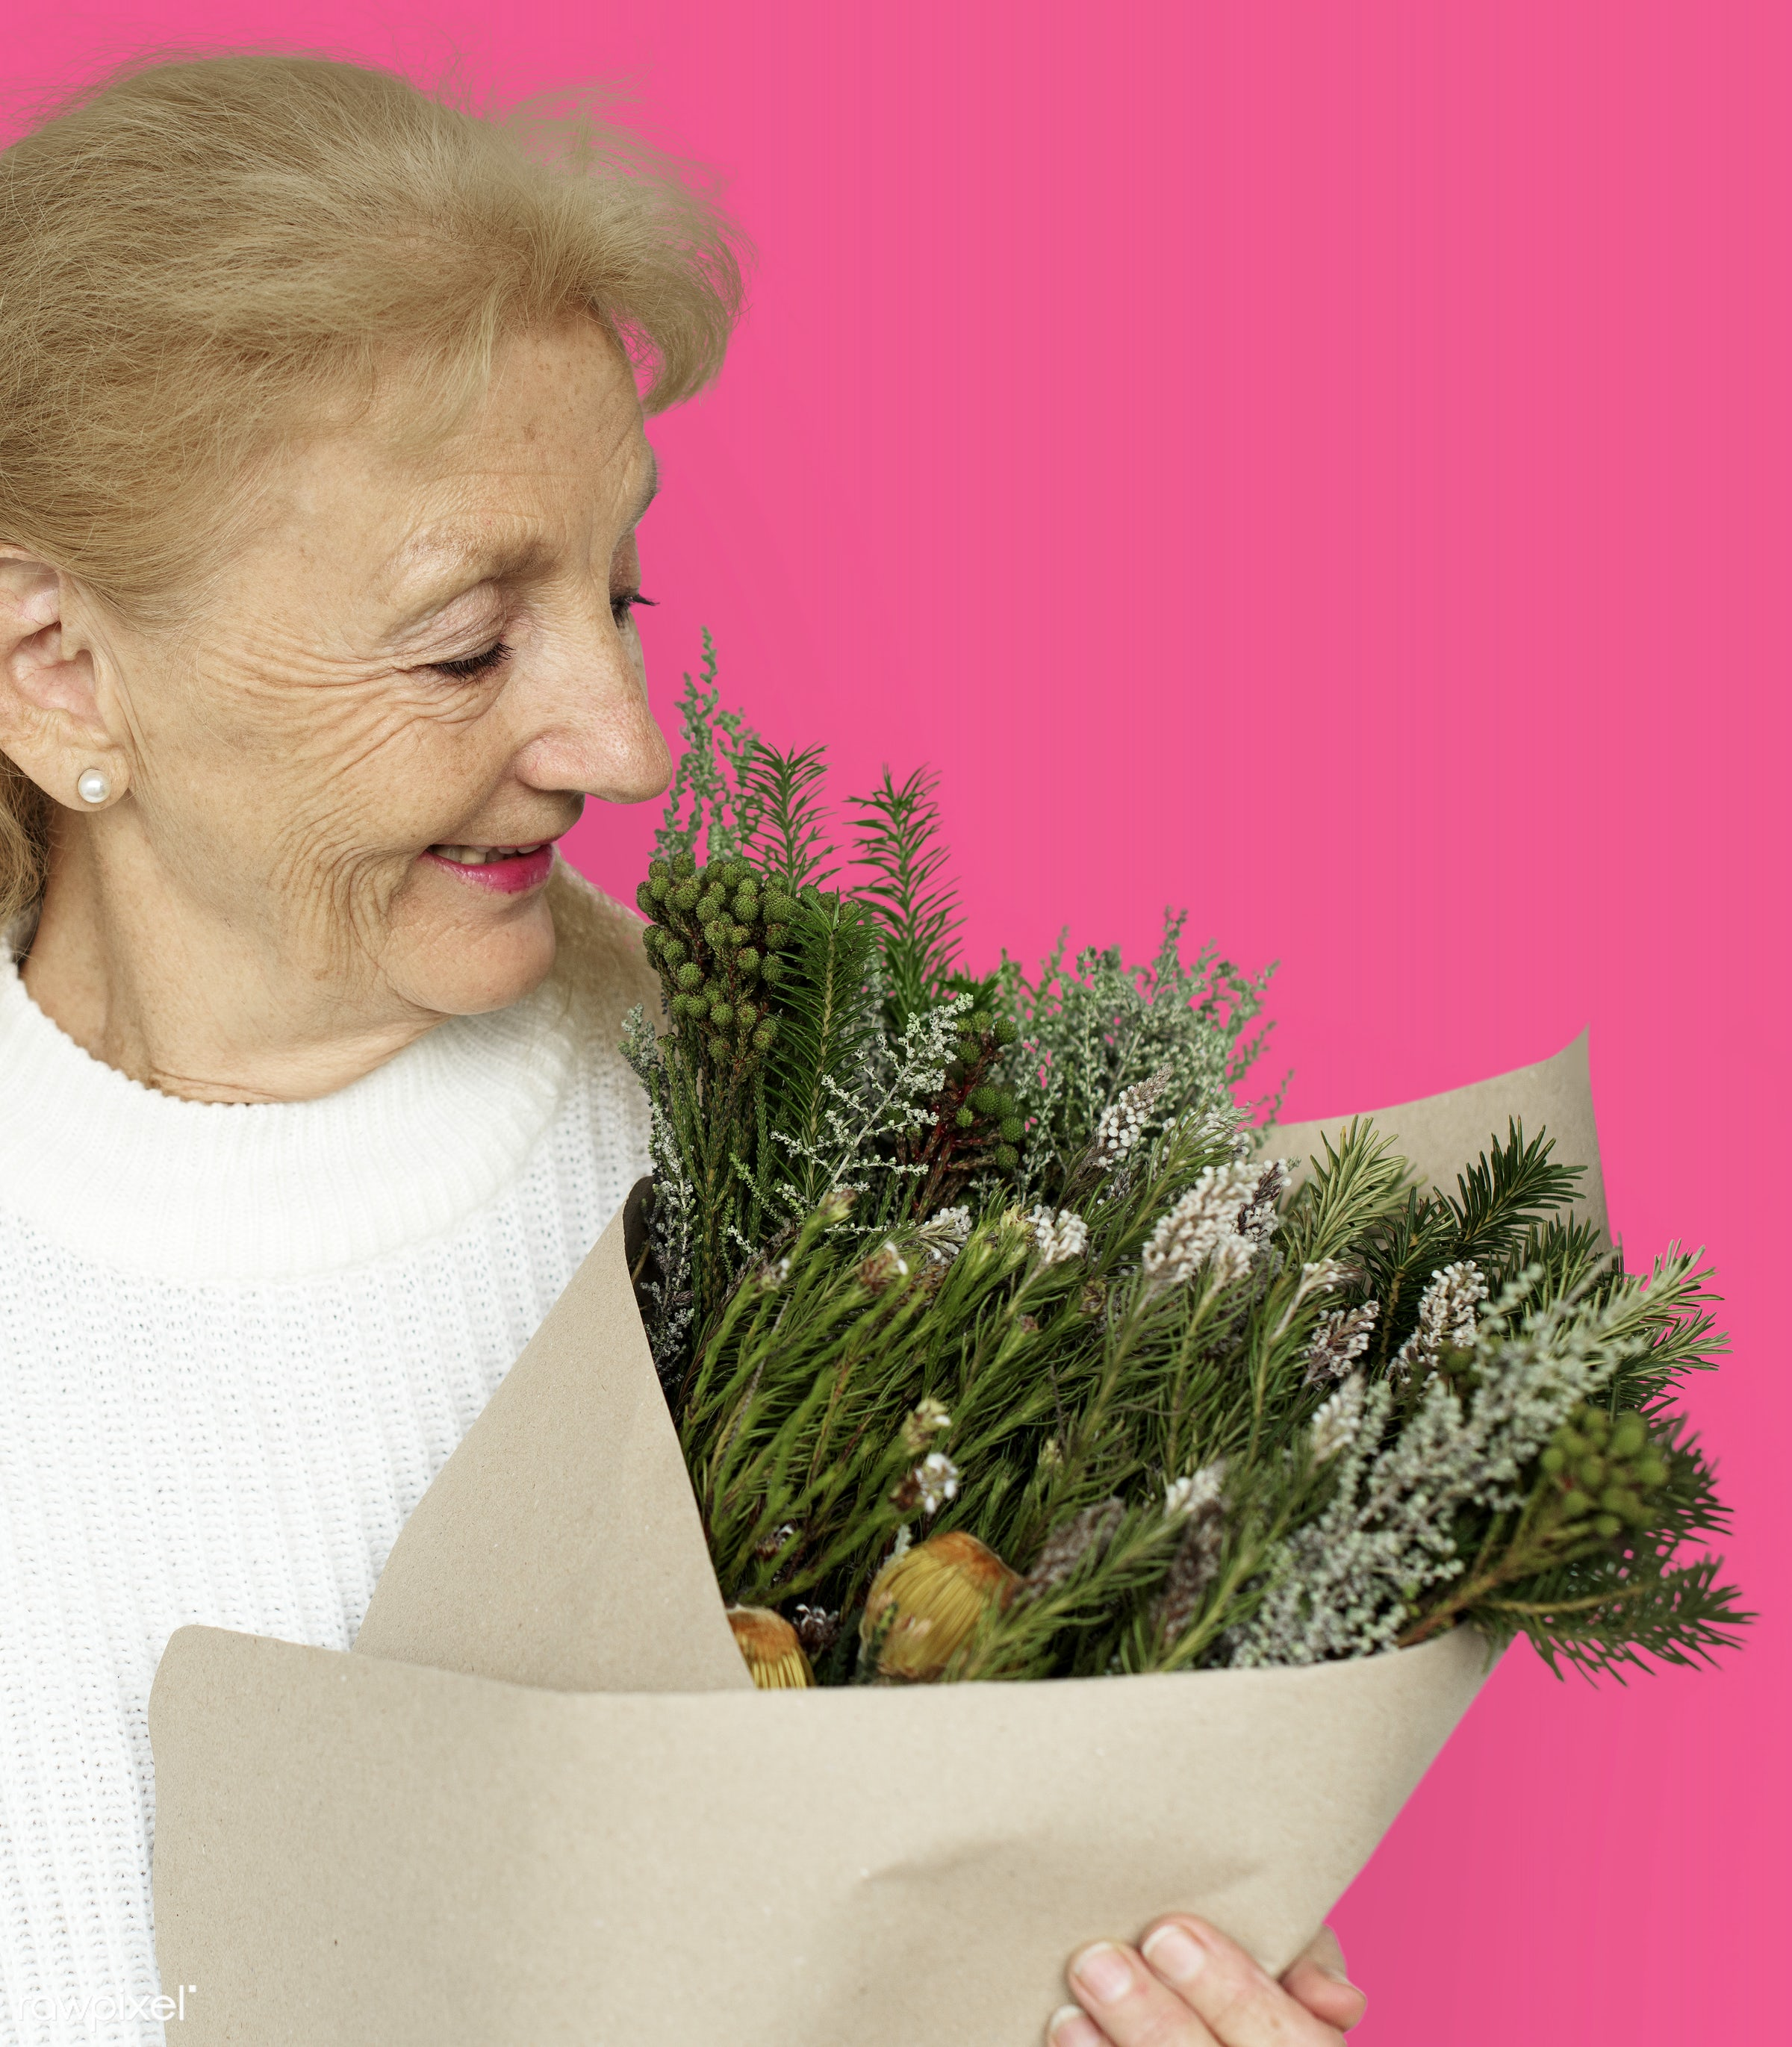 studio, expression, bouquet, person, people, woman, pink, smile, cheerful, flower, smiling, isolated, happiness, portrait,...